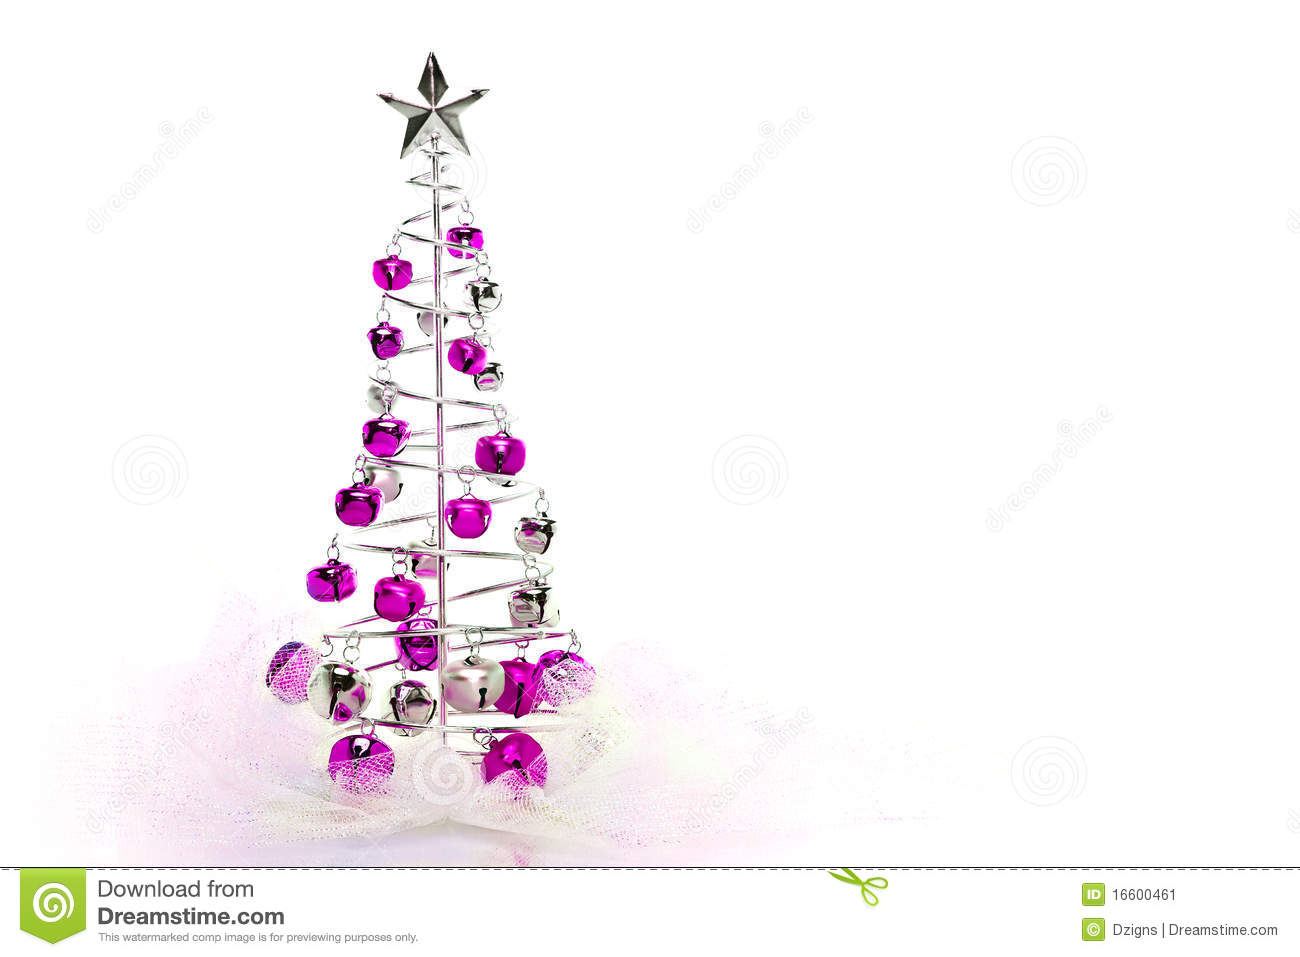 Christmas Tree Of Pink And Silver Jingle Bells Stock Image - Image of ornament, hanging: 16600461